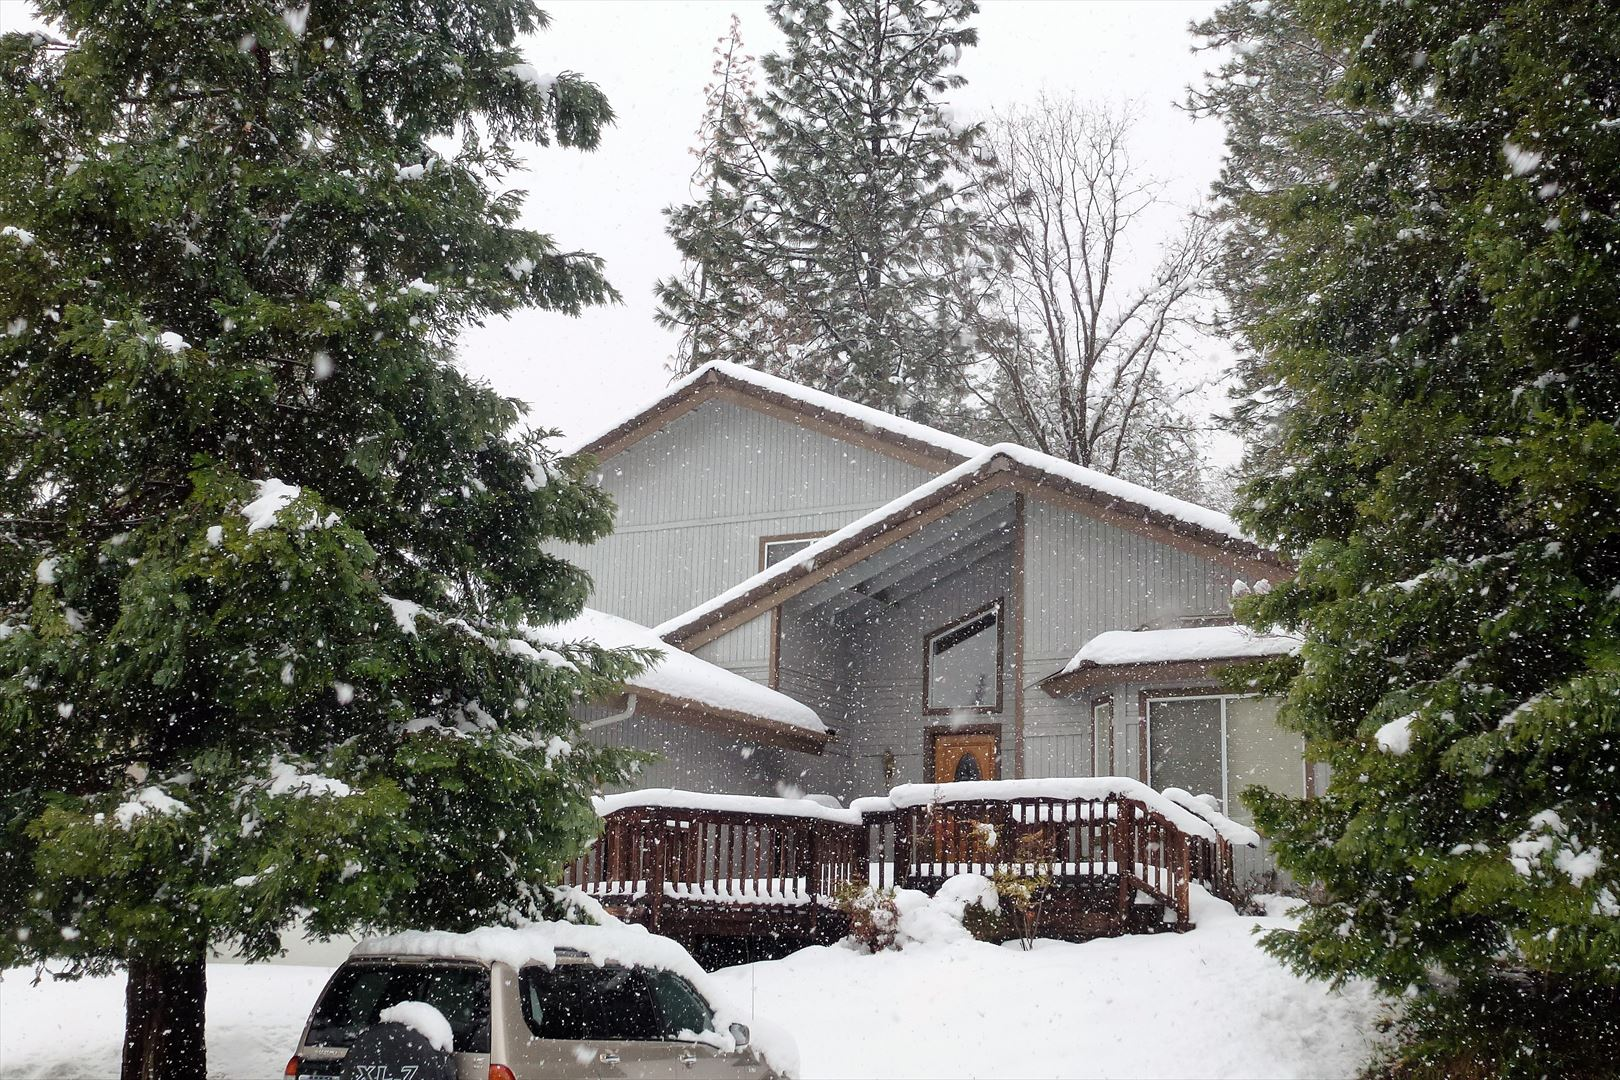 A beautiful snowy day at TJ's Chalet! 30 minutes to snow play area in winter!